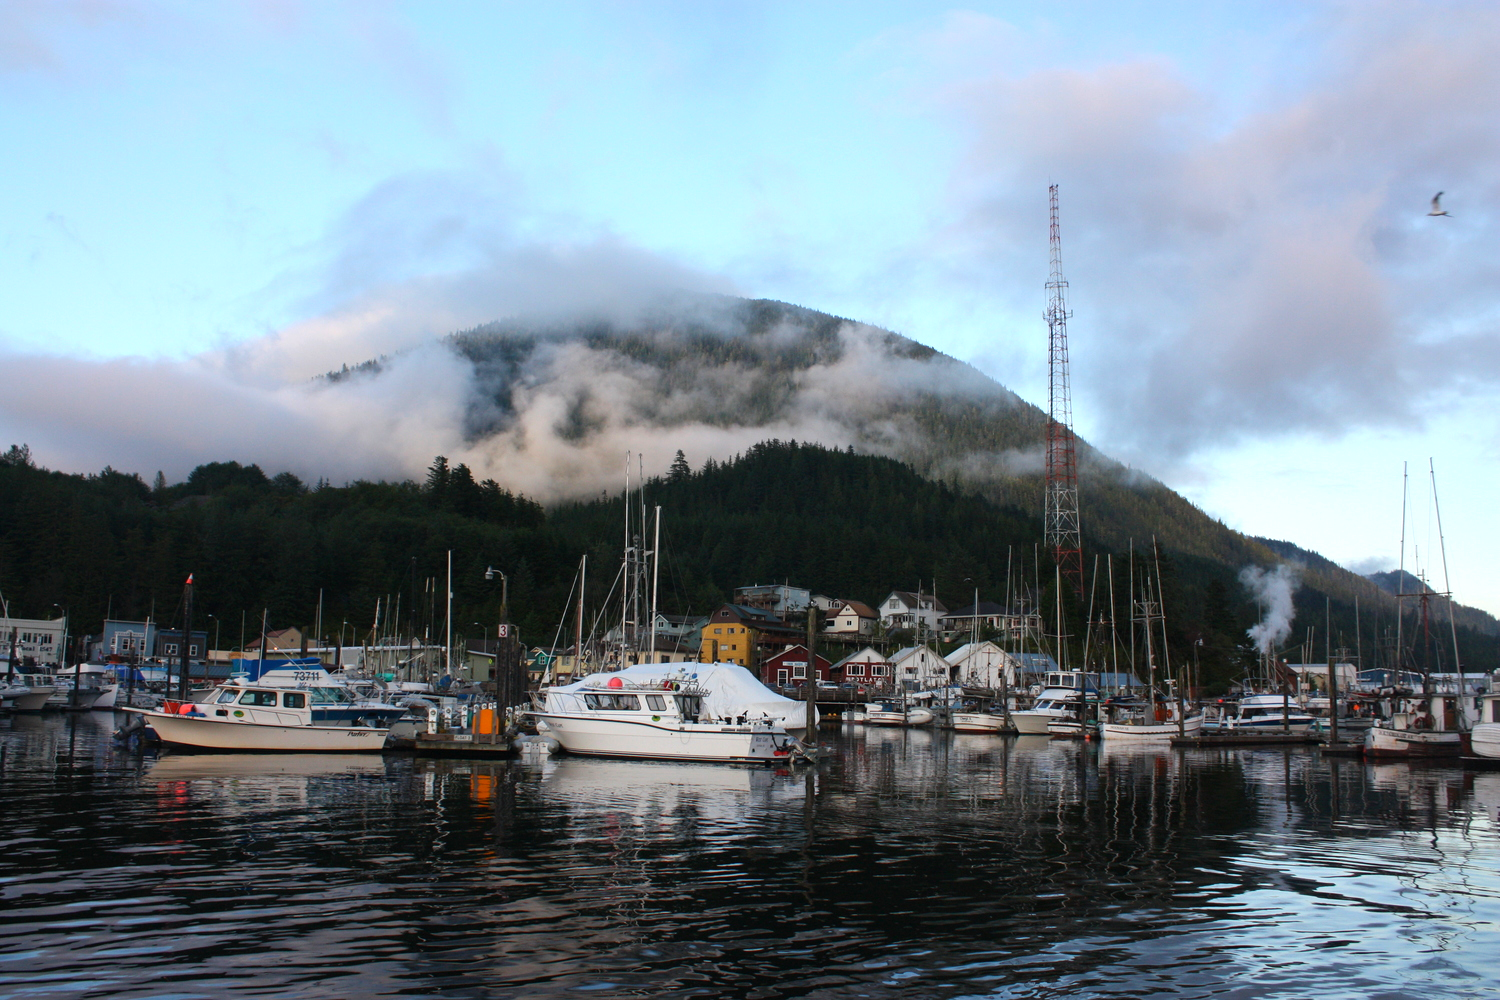 The view from our floating office in downtown Ketchikan.